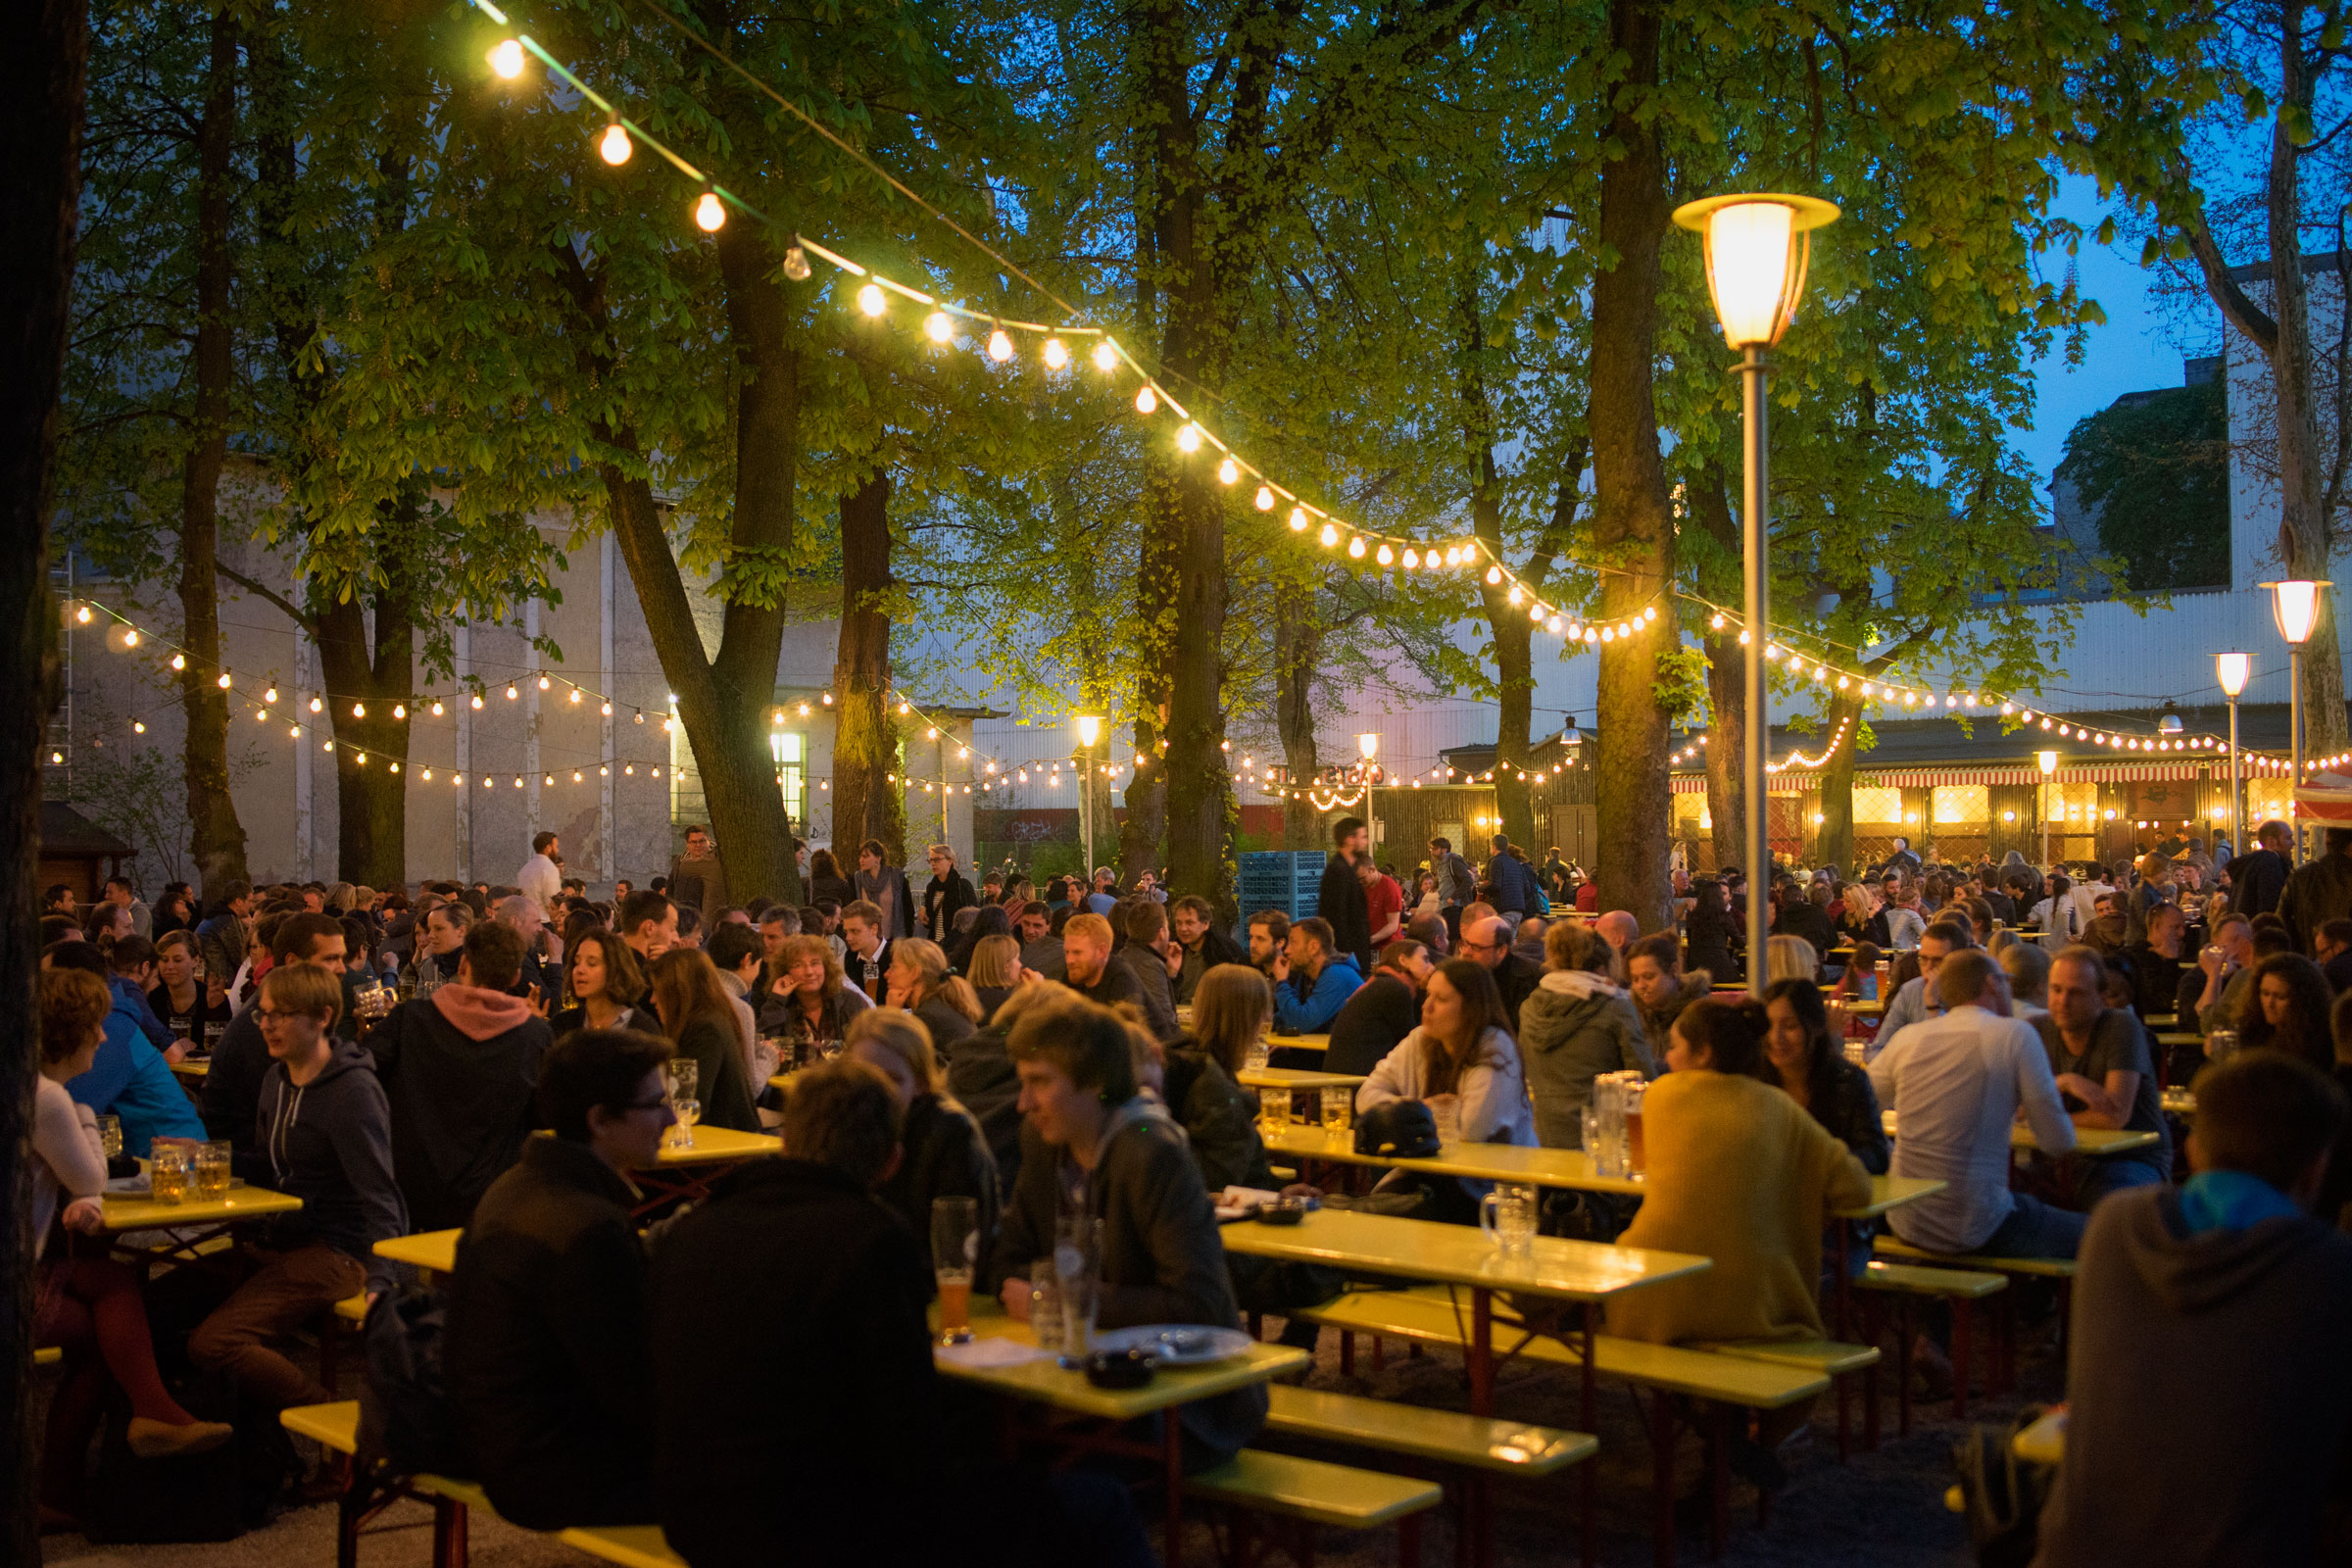 Top tips for the perfect summer in Berlin